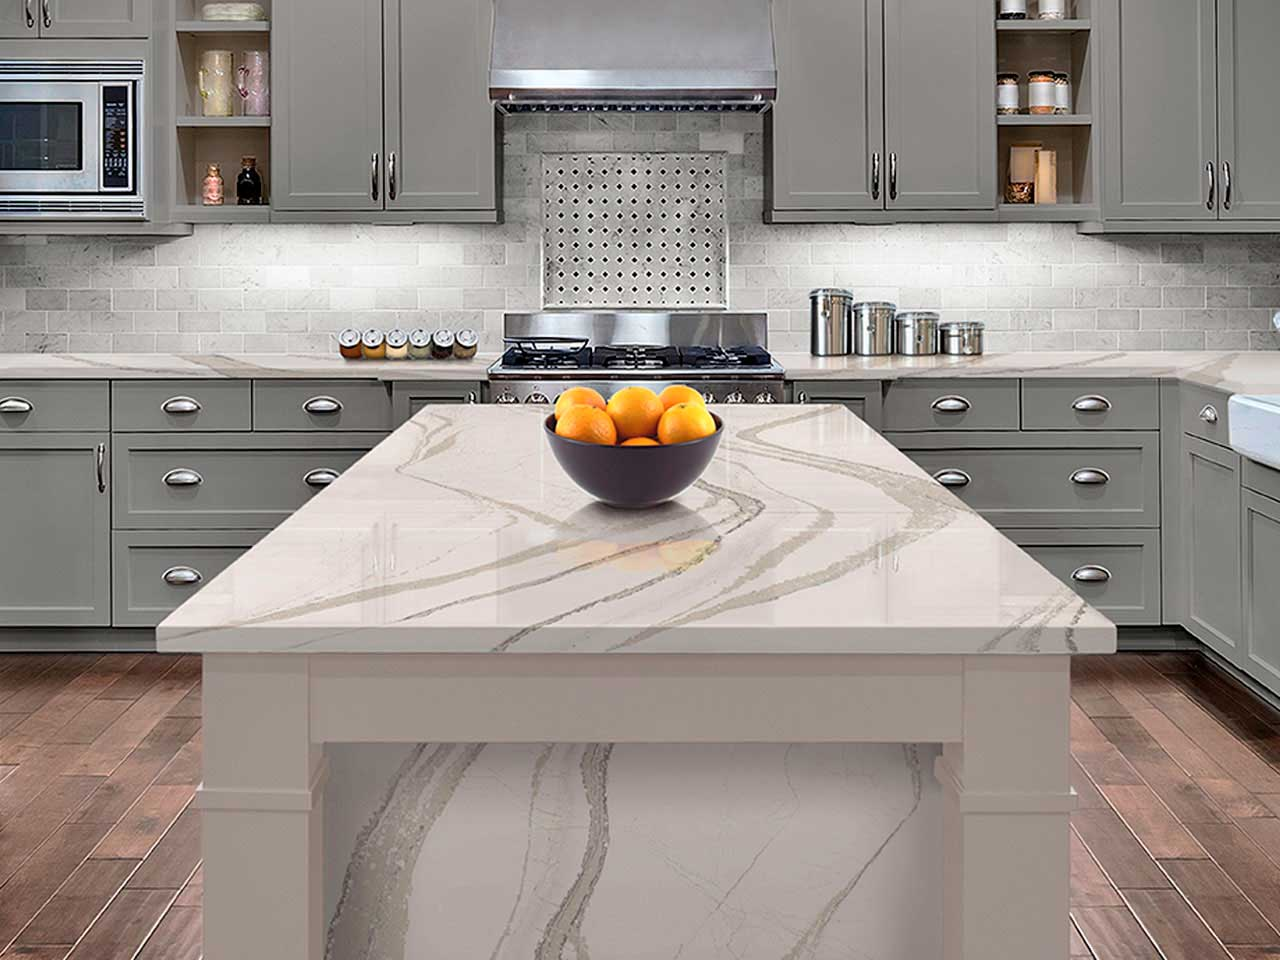 Interiors - Silestone Calcutta Gold for Kitchen & Bathroom Surfaces